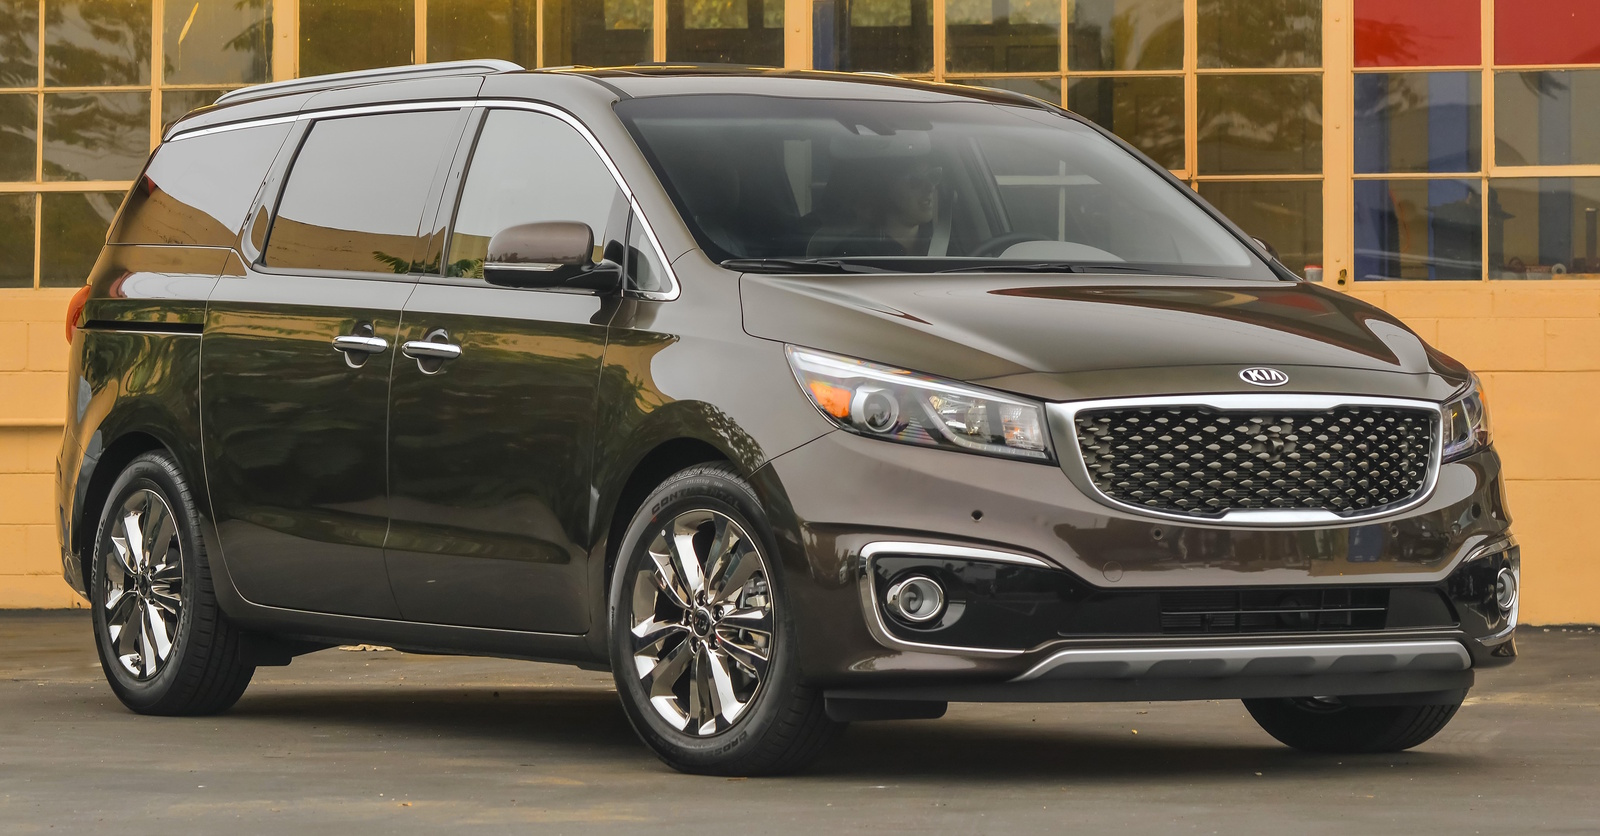 kia sedona front end diagram  kia  free engine image for